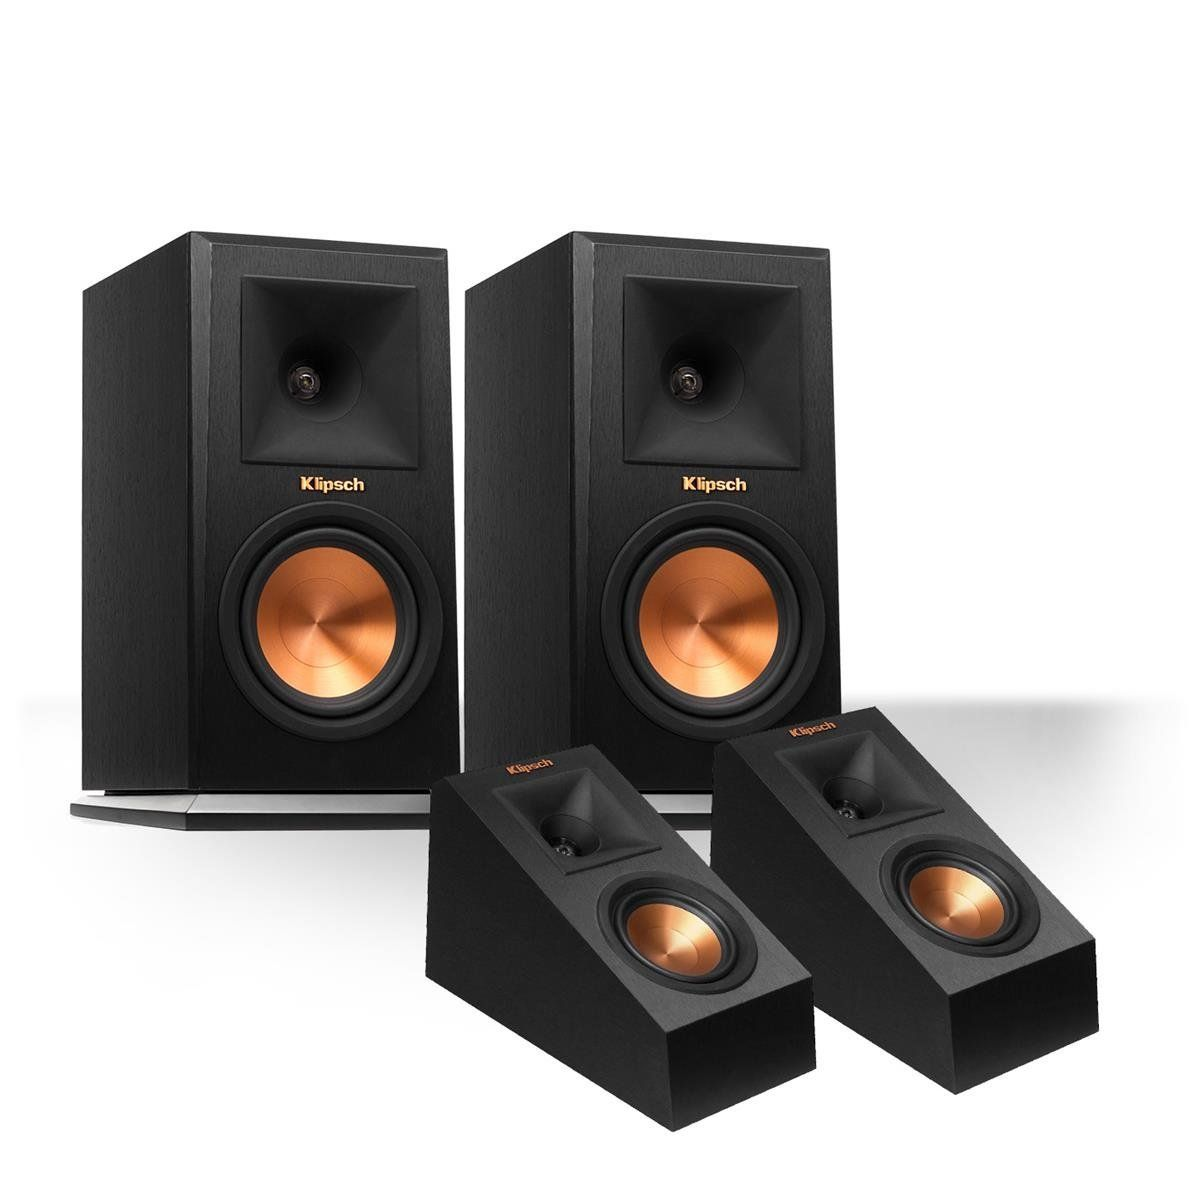 Great Speakers Klipsch Rp 160m Reference Premiere Monitor Promedia 2 1 Wiring Diagram With 140sa Add On Dolby Atmos Enabled Elevation Black Introduce Whats New And Future